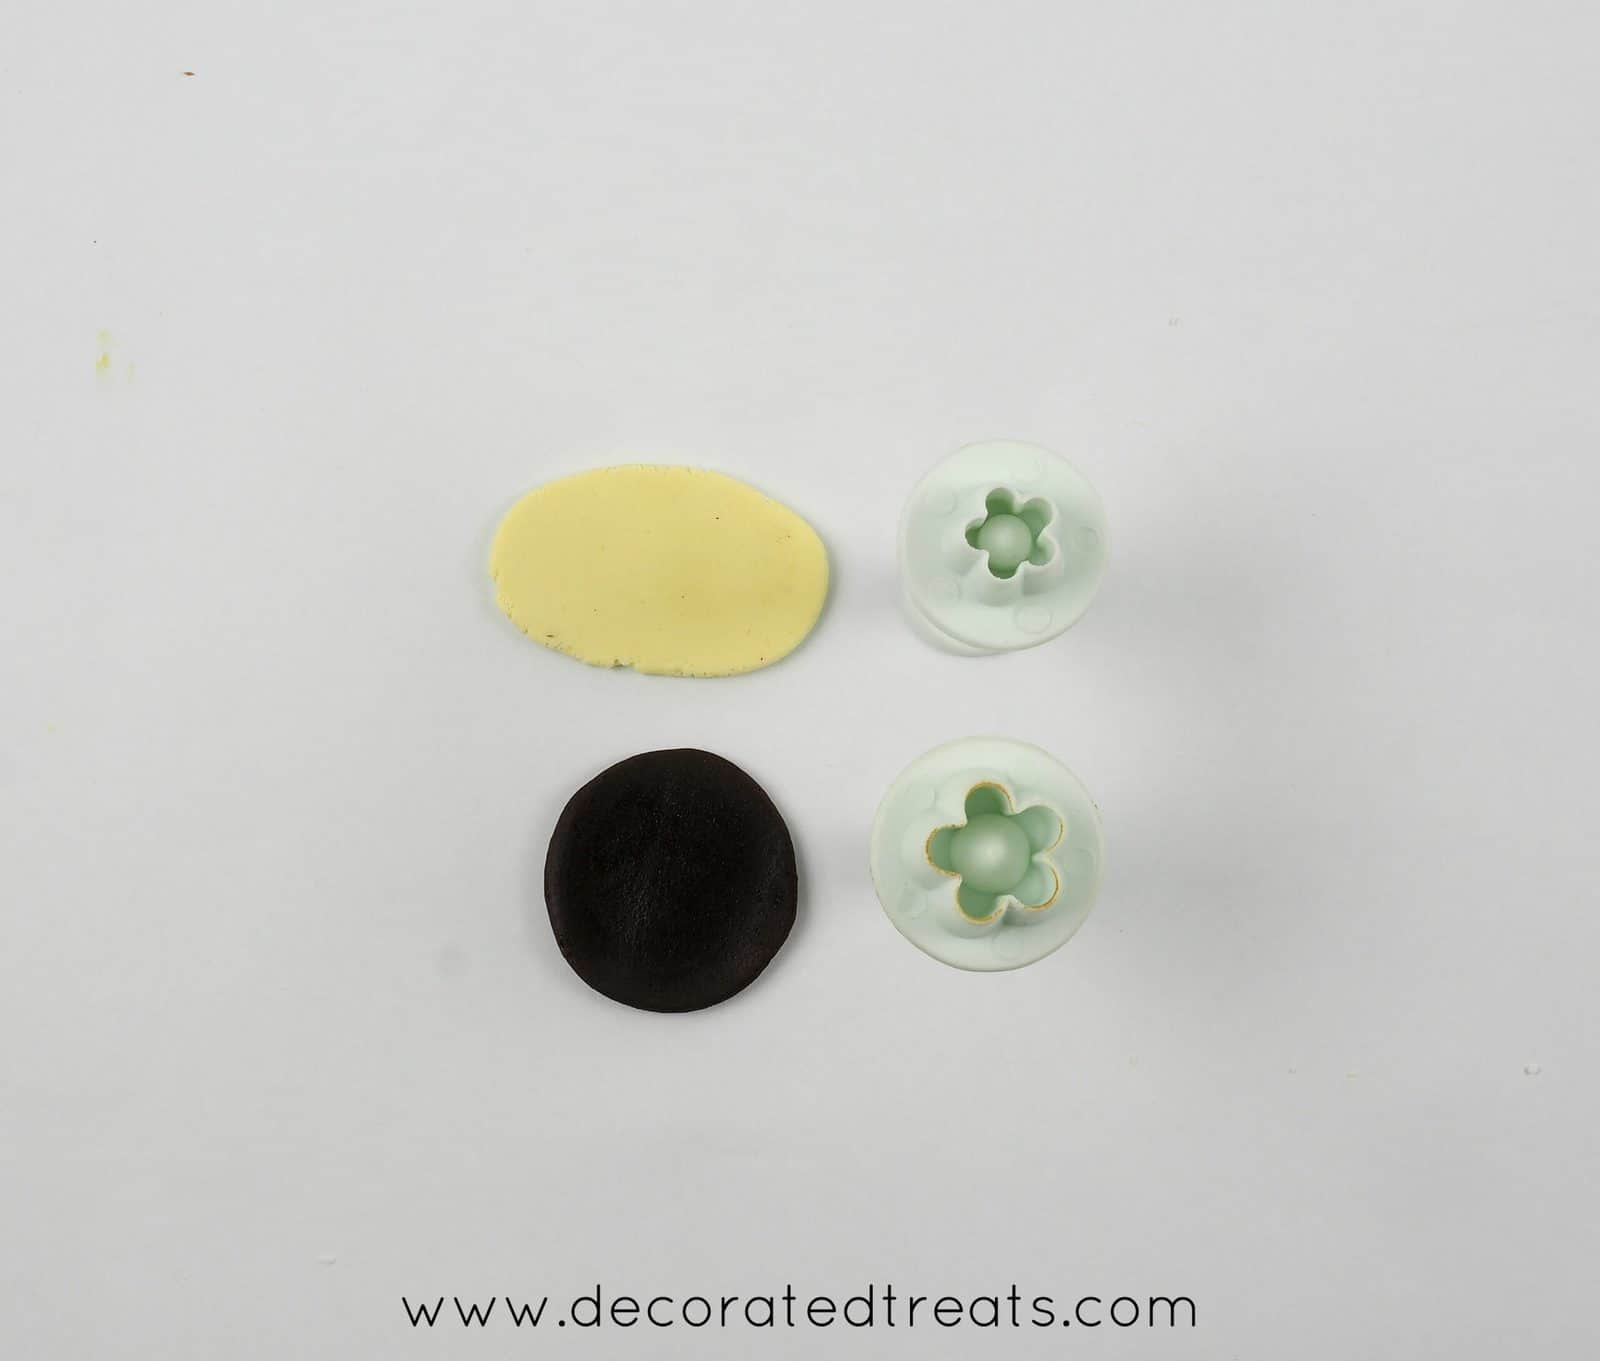 2 flower plunger cutters, some brown and yellow fondant